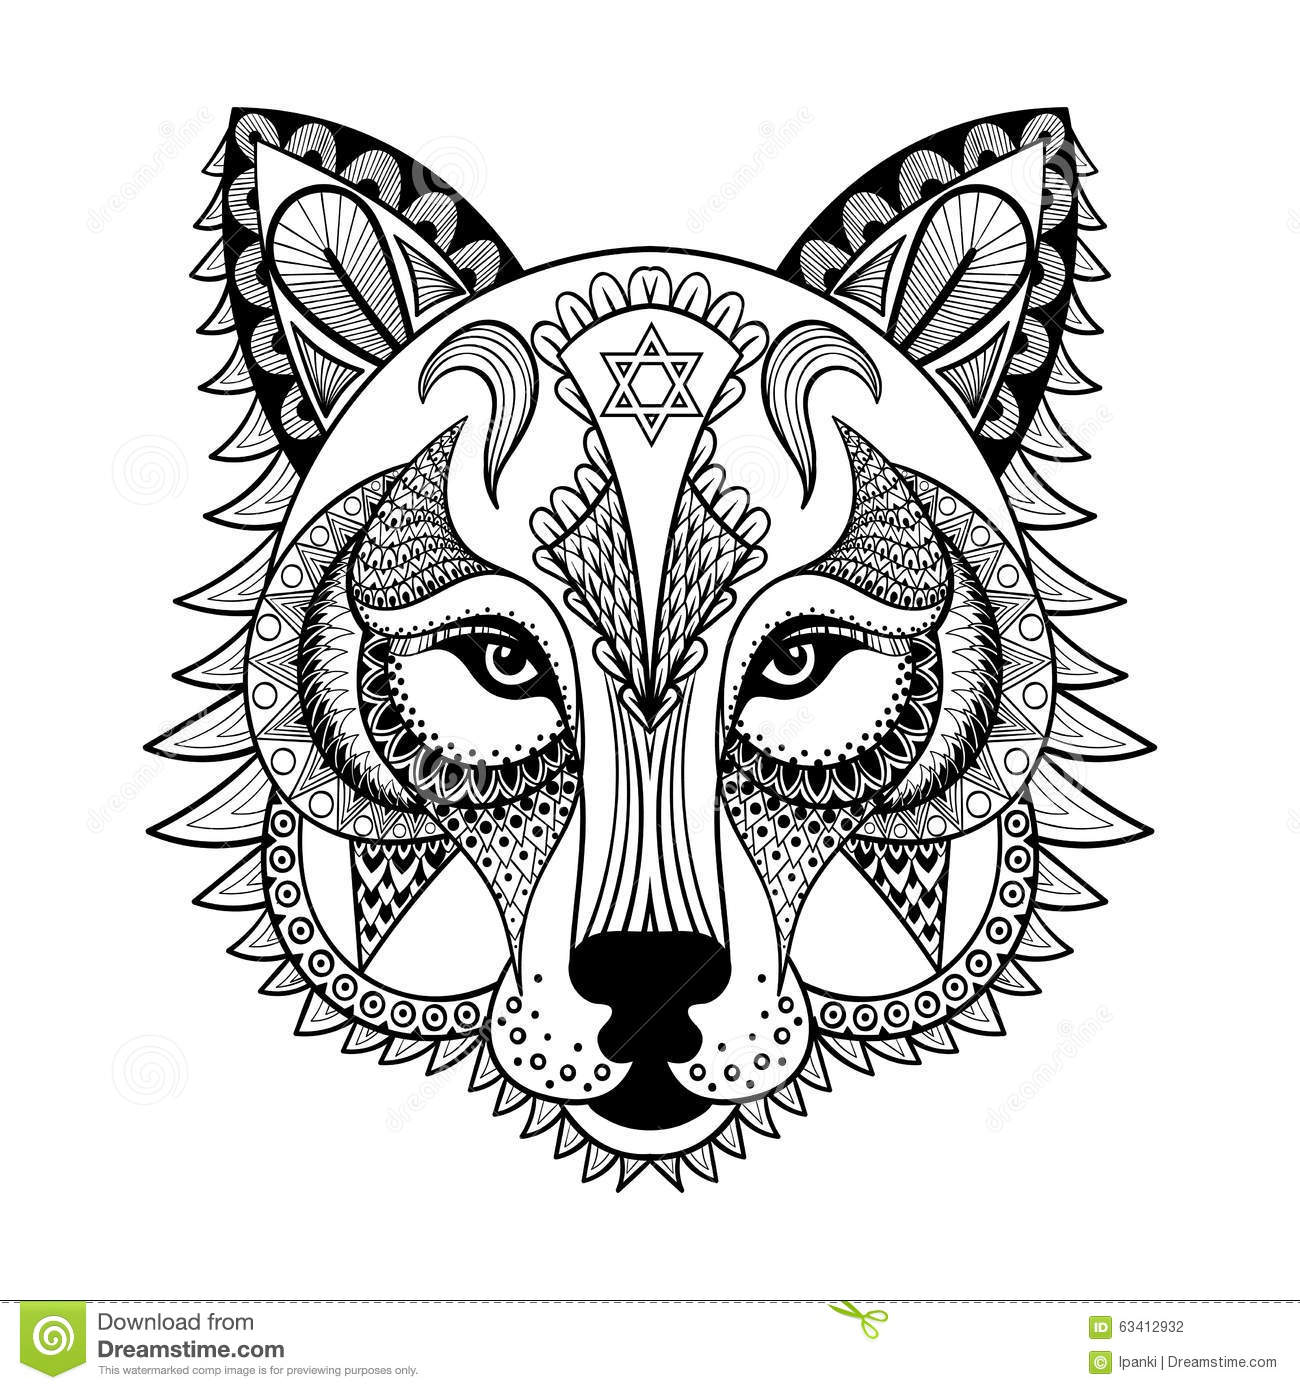 Wolf Mandala Coloring Pages Vector Ornamental With Dreamcatcher